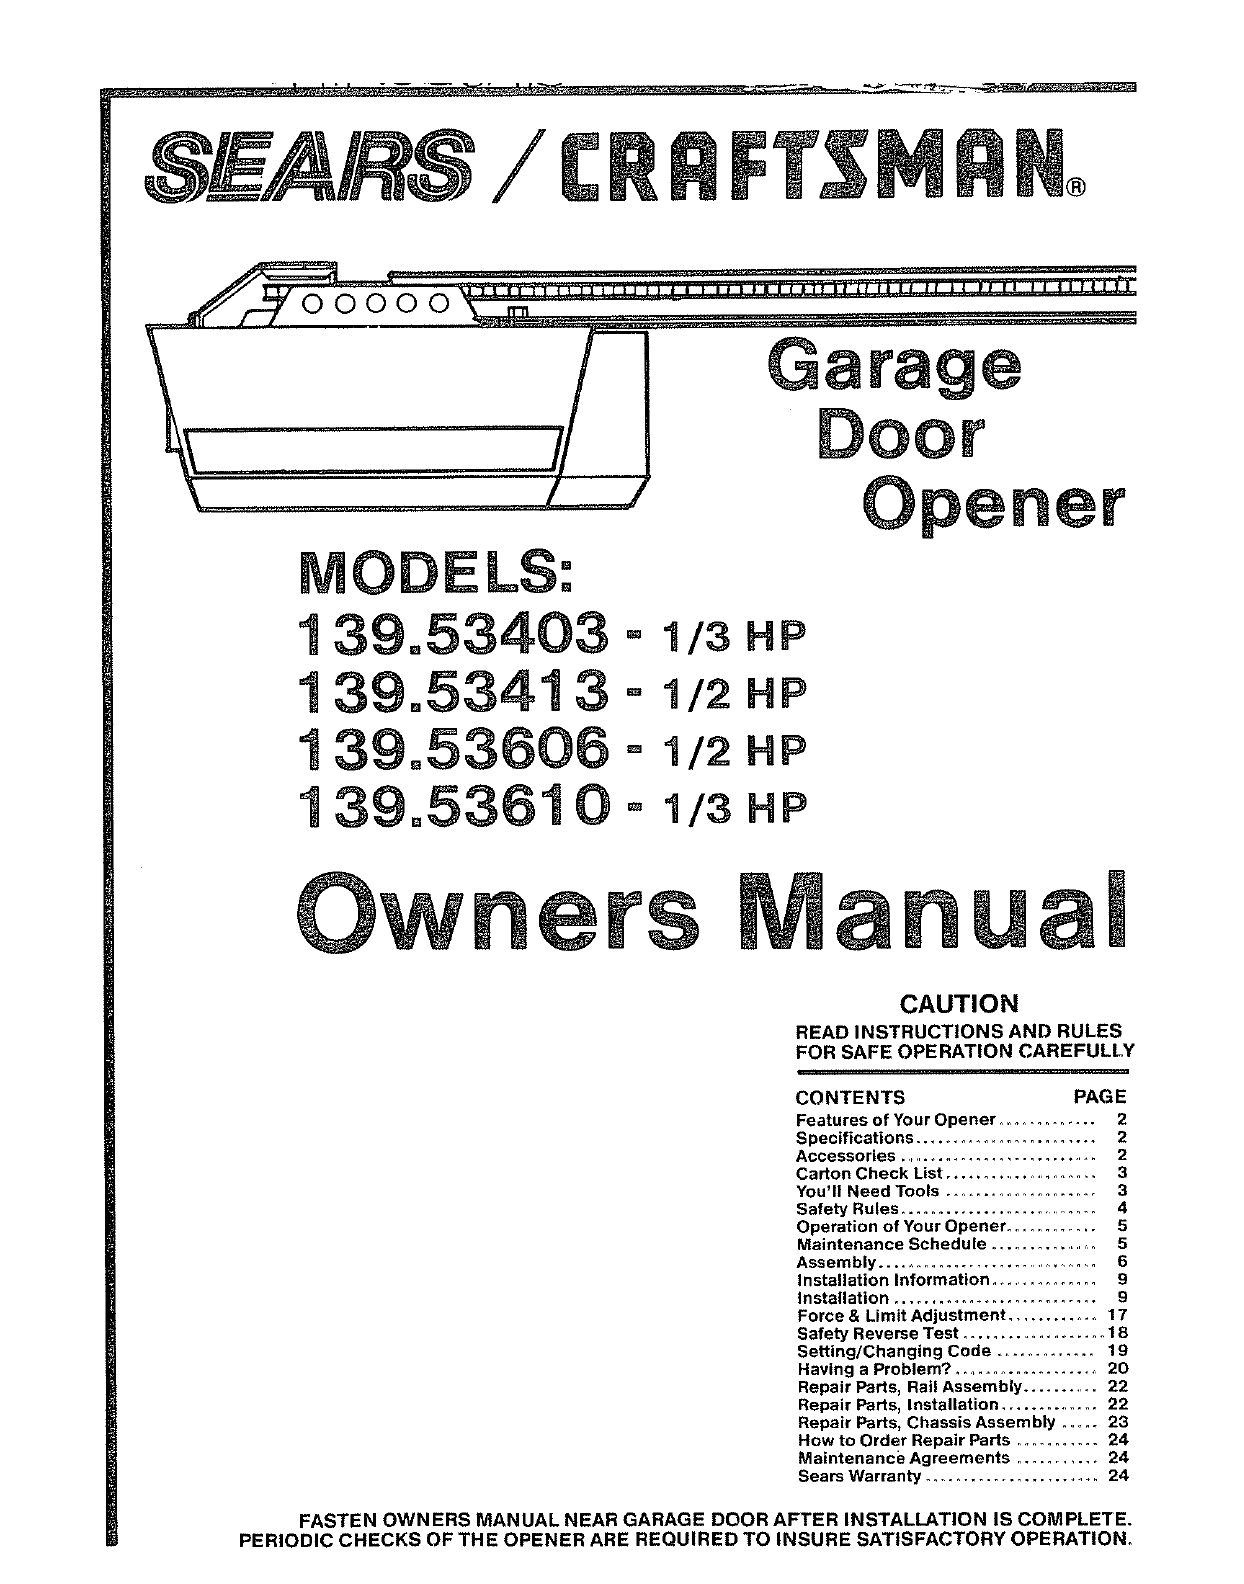 Craftsman Garage Door Opener Parts Home Depot : craftsman, garage, opener, parts, depot, Craftsman, Garage, Opener, Manual, Http://undhimmi.com/craftsman-garage-, Door-opener-man…, Opener,, Door,, Motor